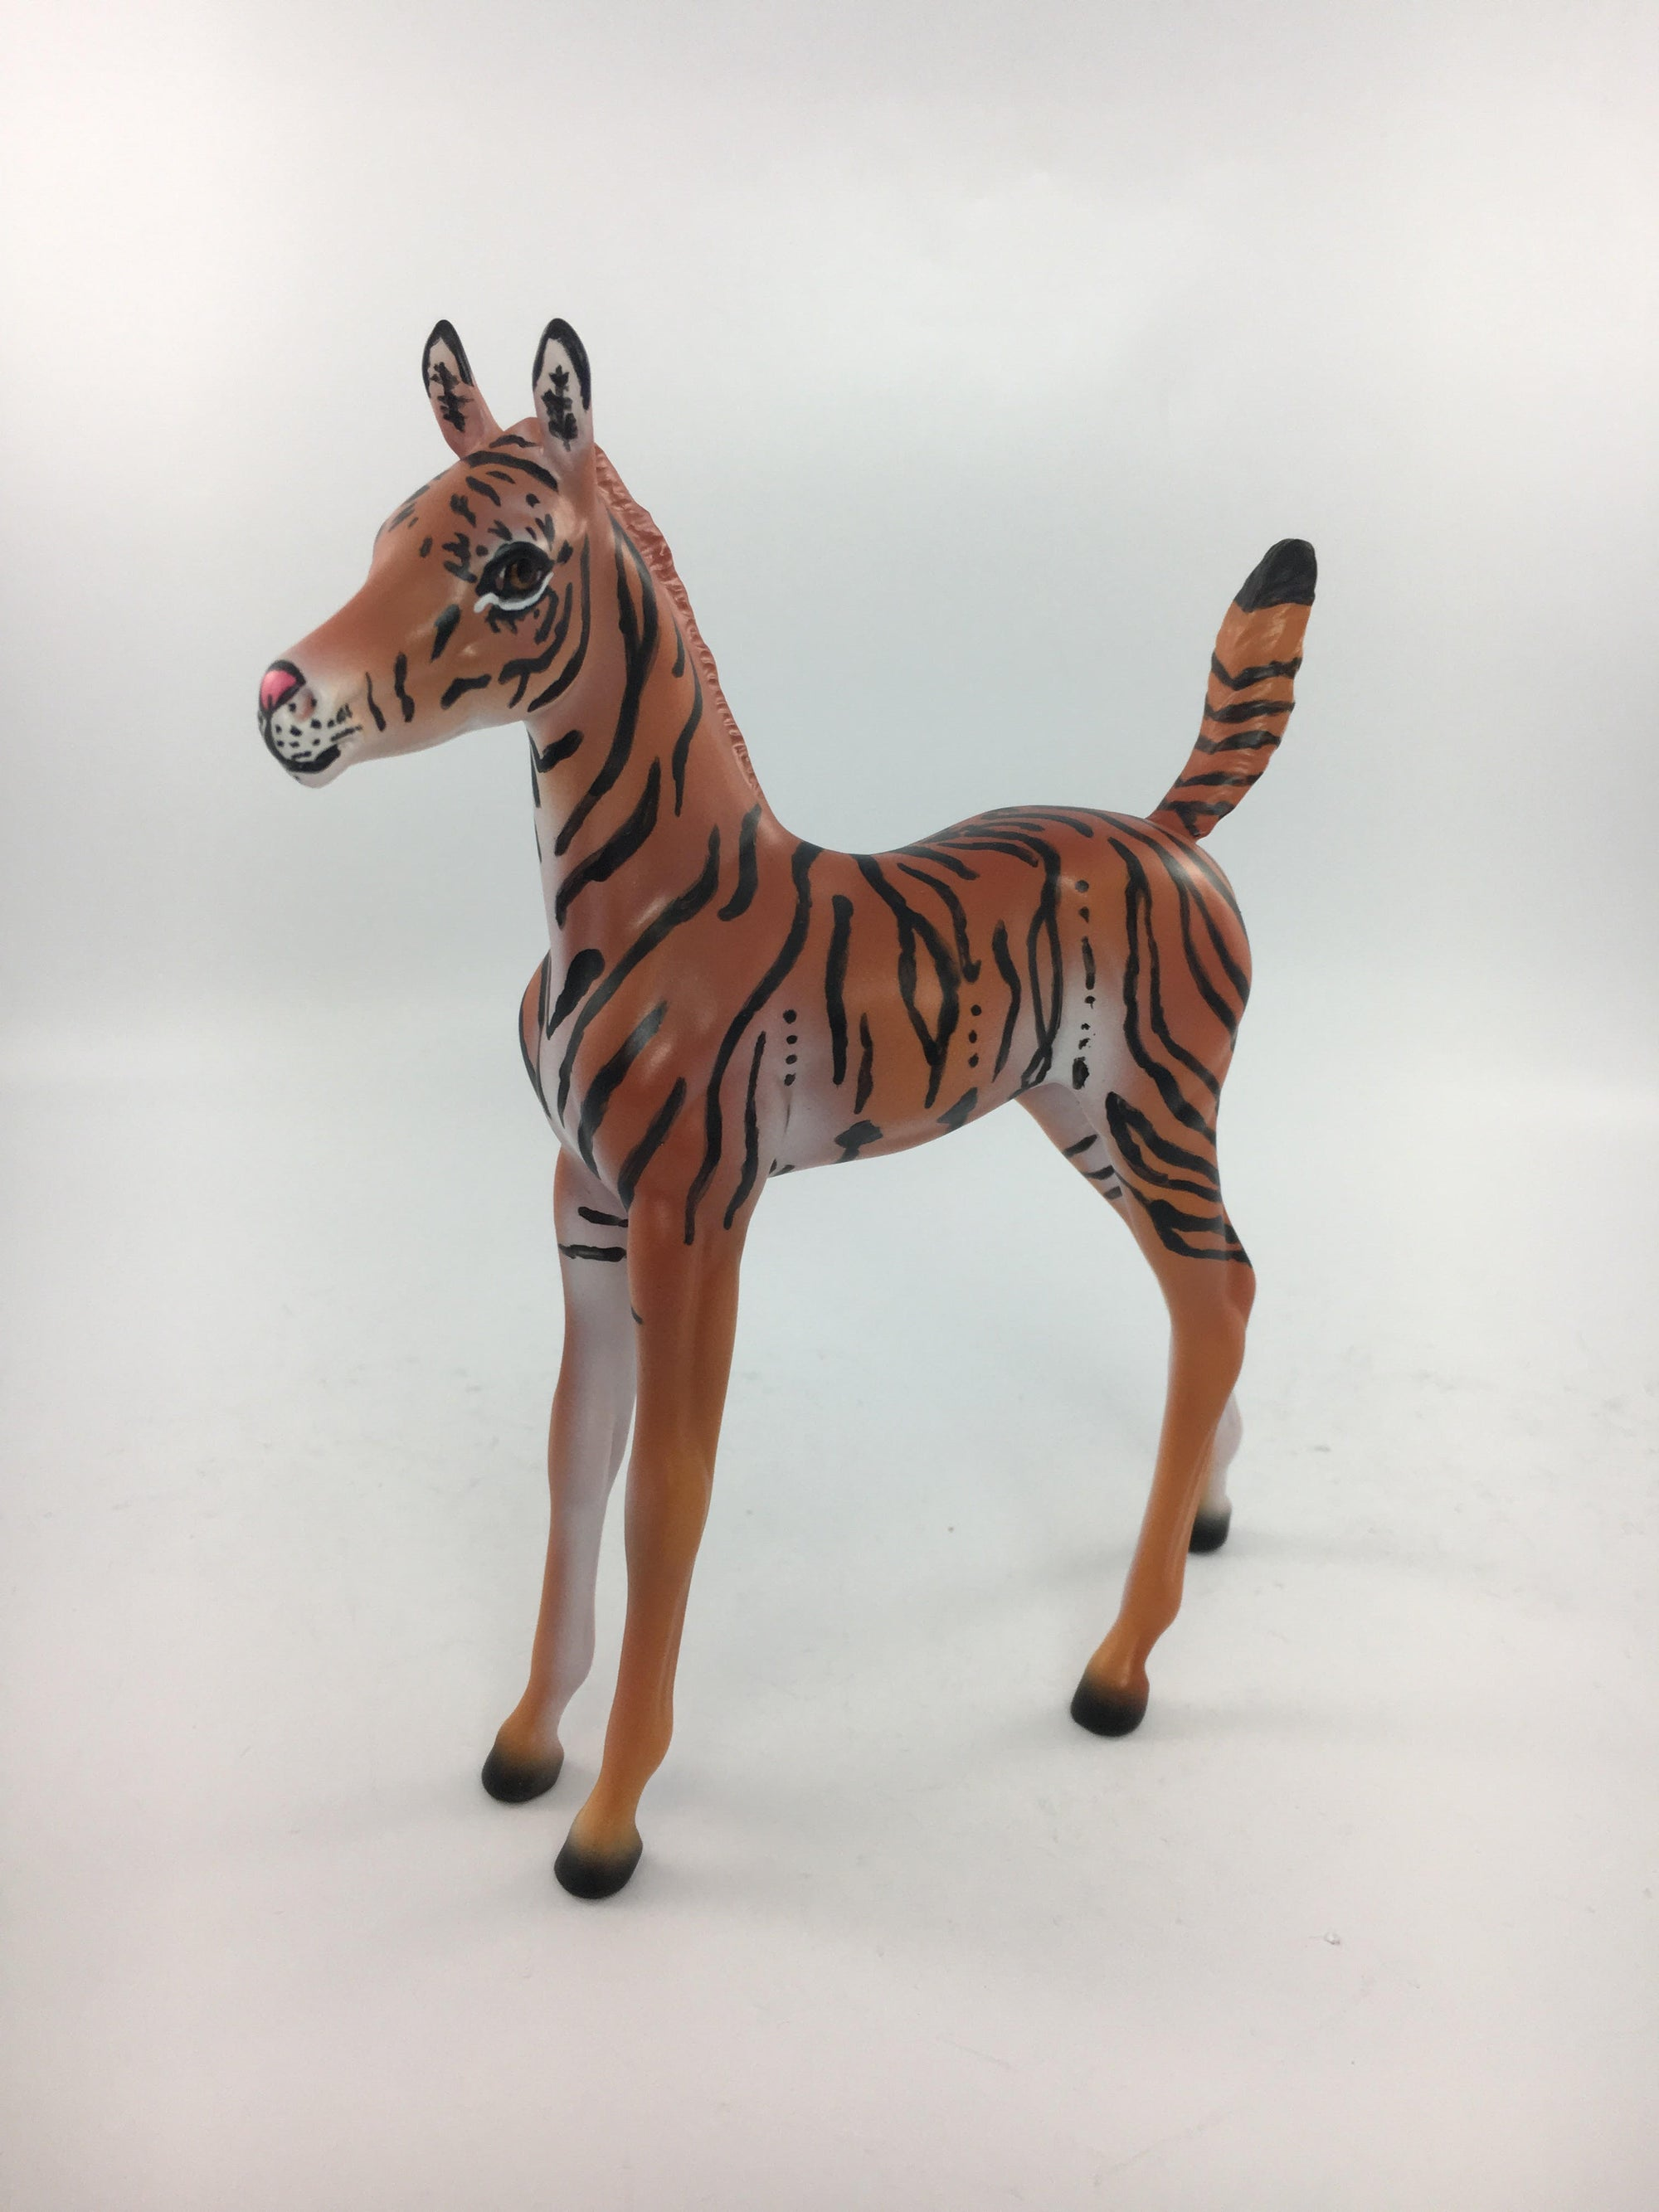 FAUNA~LE-7-TIGER FOAL MODEL HORSE 10/31/17